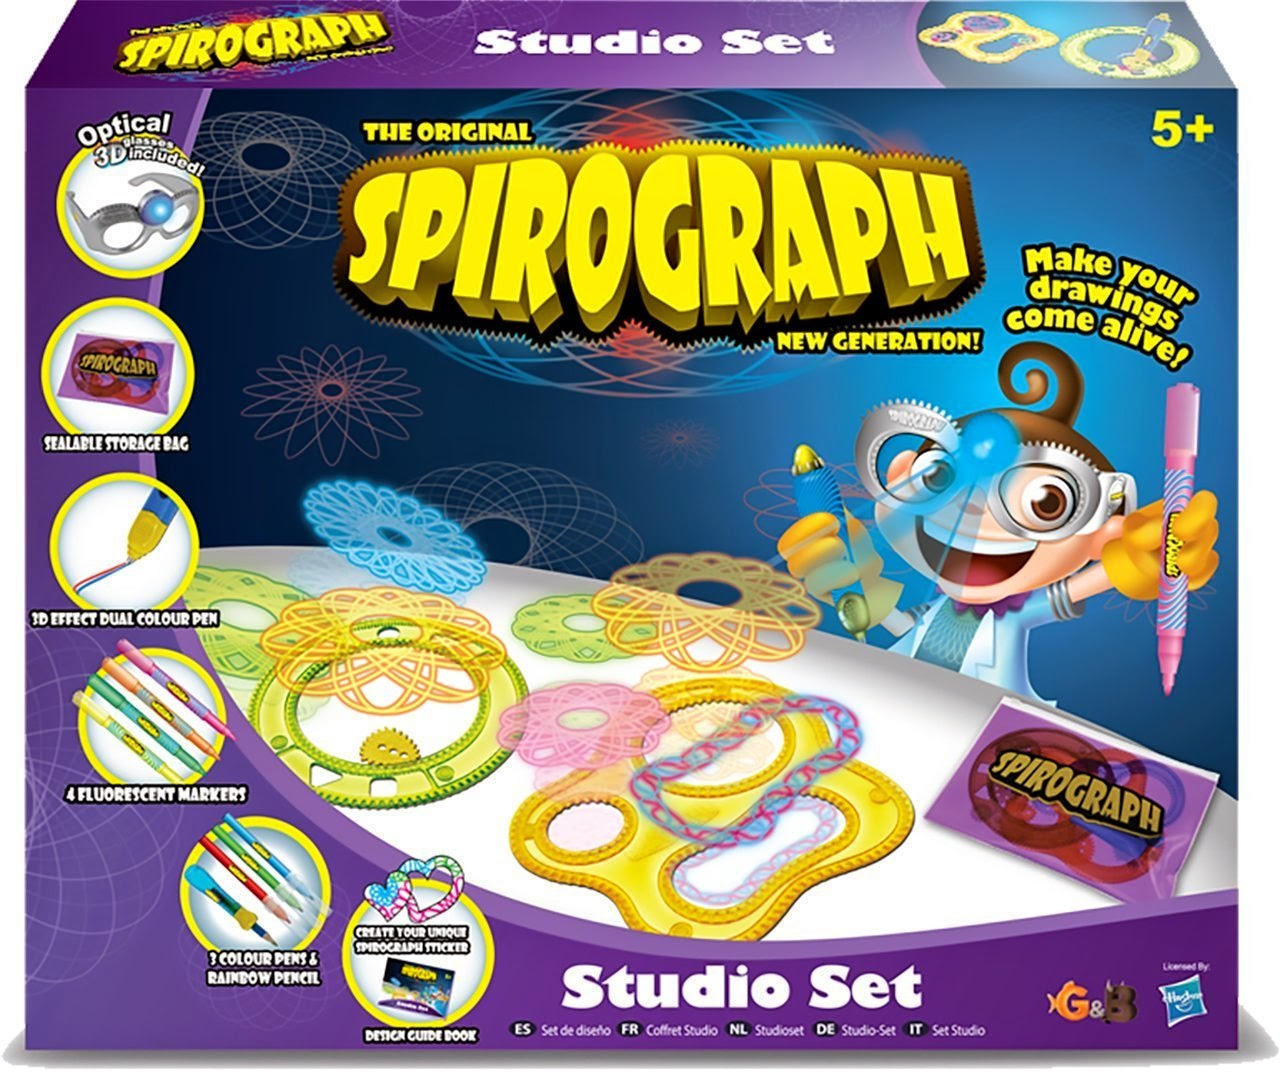 Win Spirograph Optical 3D Artist Sets